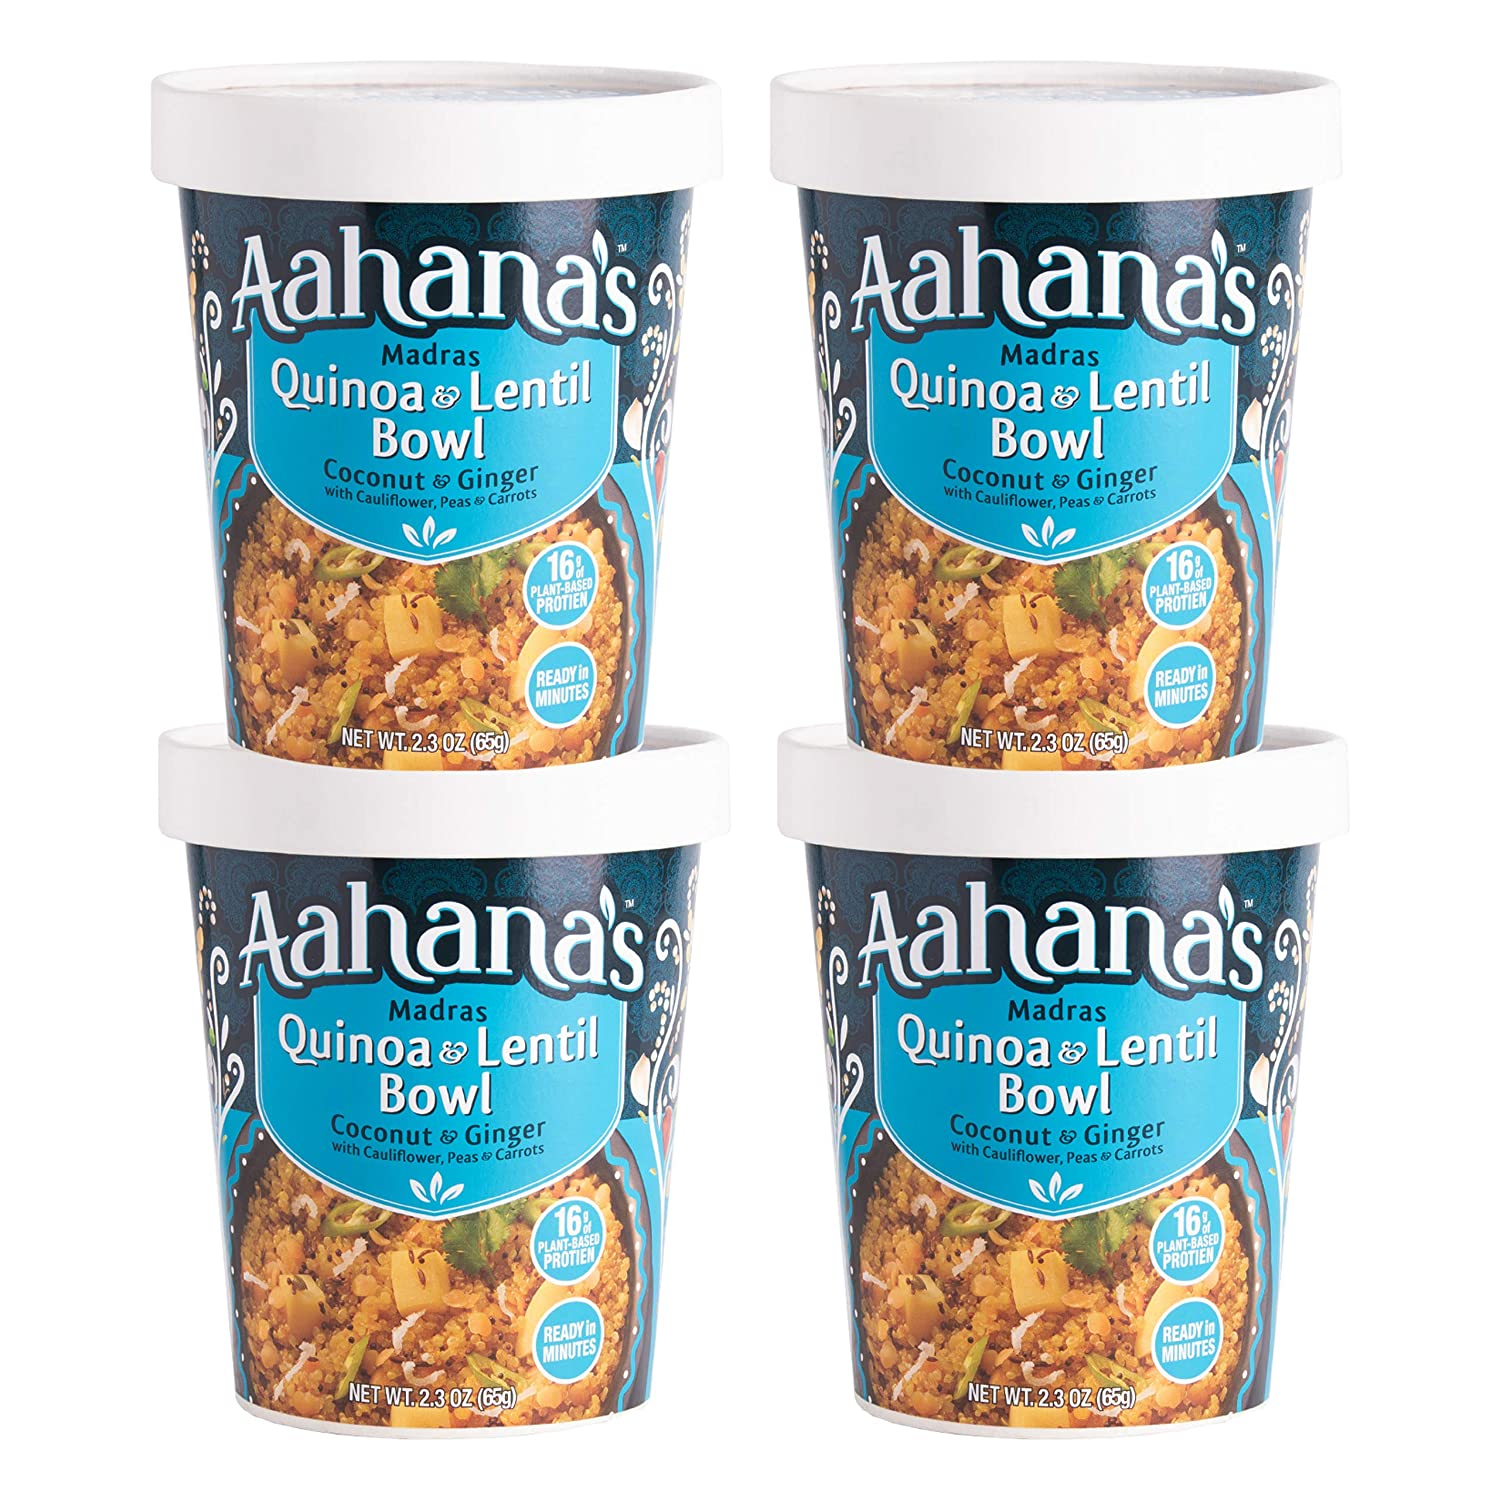 Aahana's Madras Quinoa and Lentil- Gluten Free, Vegan Food with 15g Plant-Based Protein - Ready-to-Eat, Healthy Meals, Just add water - No Refrigeration Required - (2.3 oz, Pack of 4)